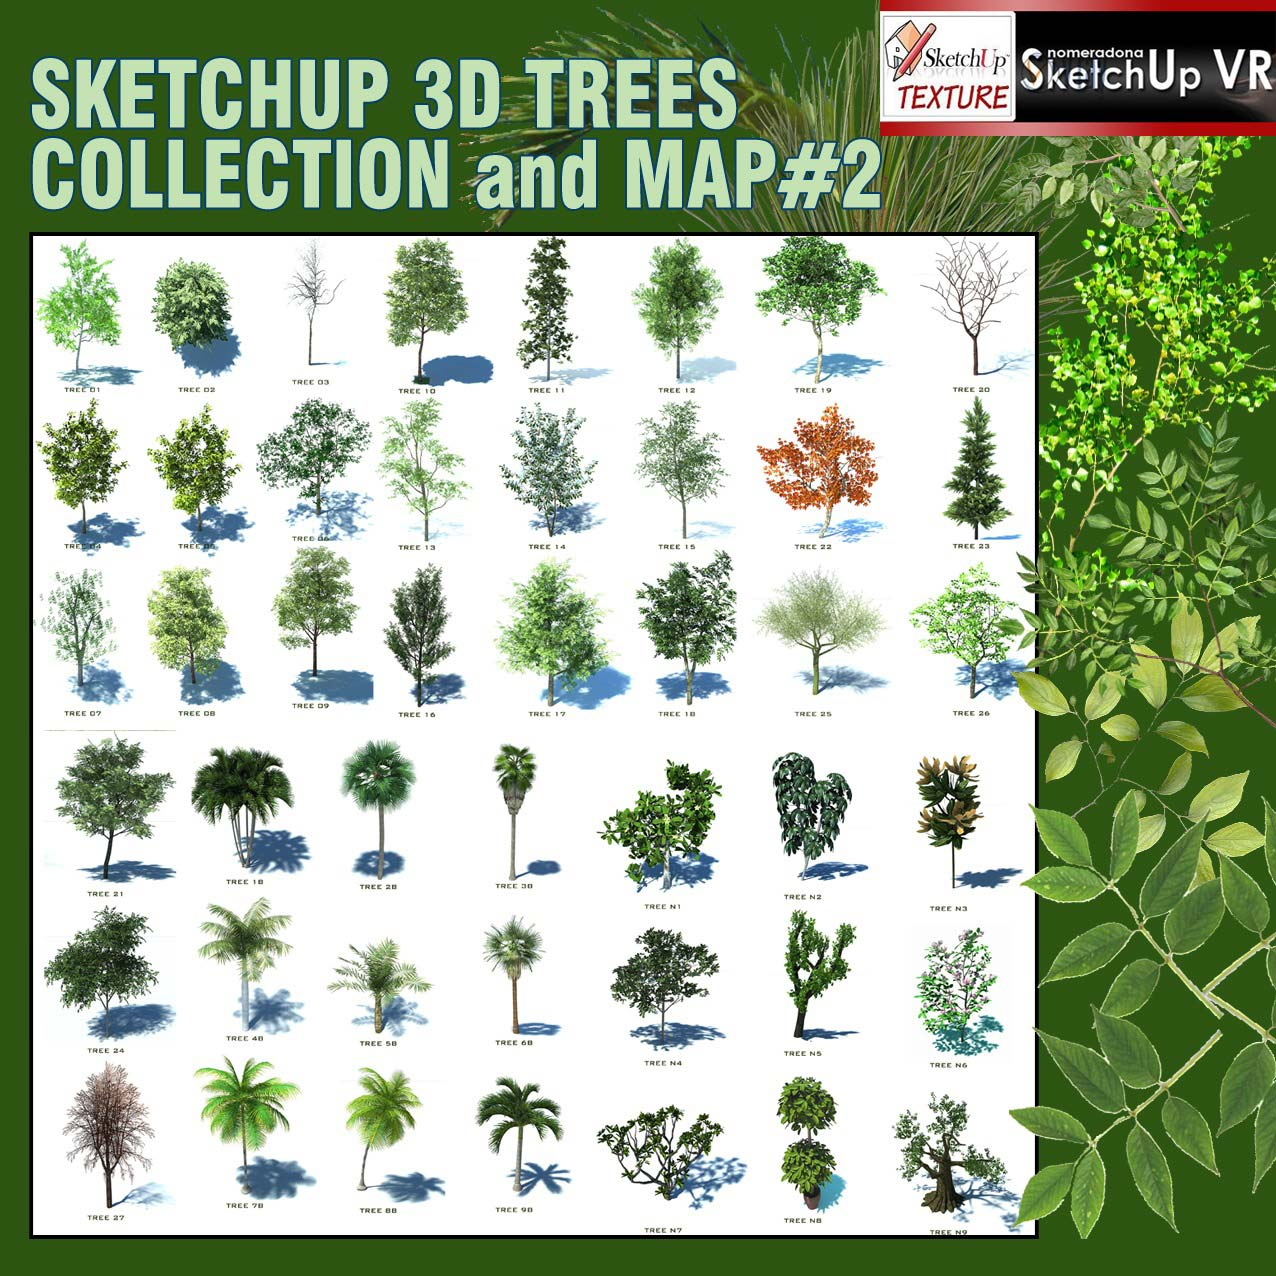 Sketchup components download free, sketchup components dynamic.